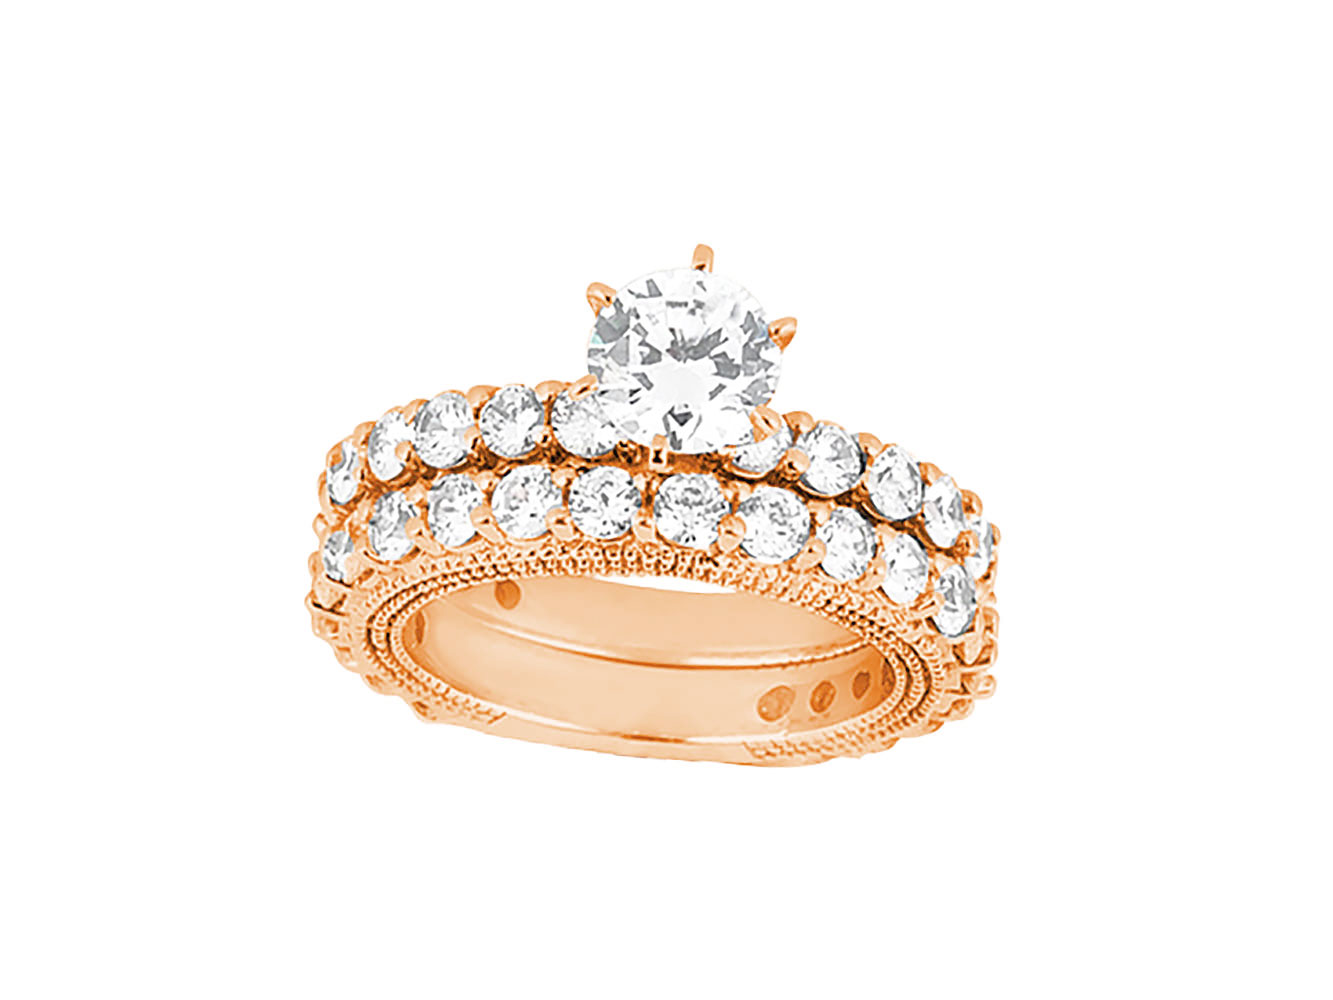 10k gold wedding ring sets 3 50ct cut bridal engagement ring wedding 1012